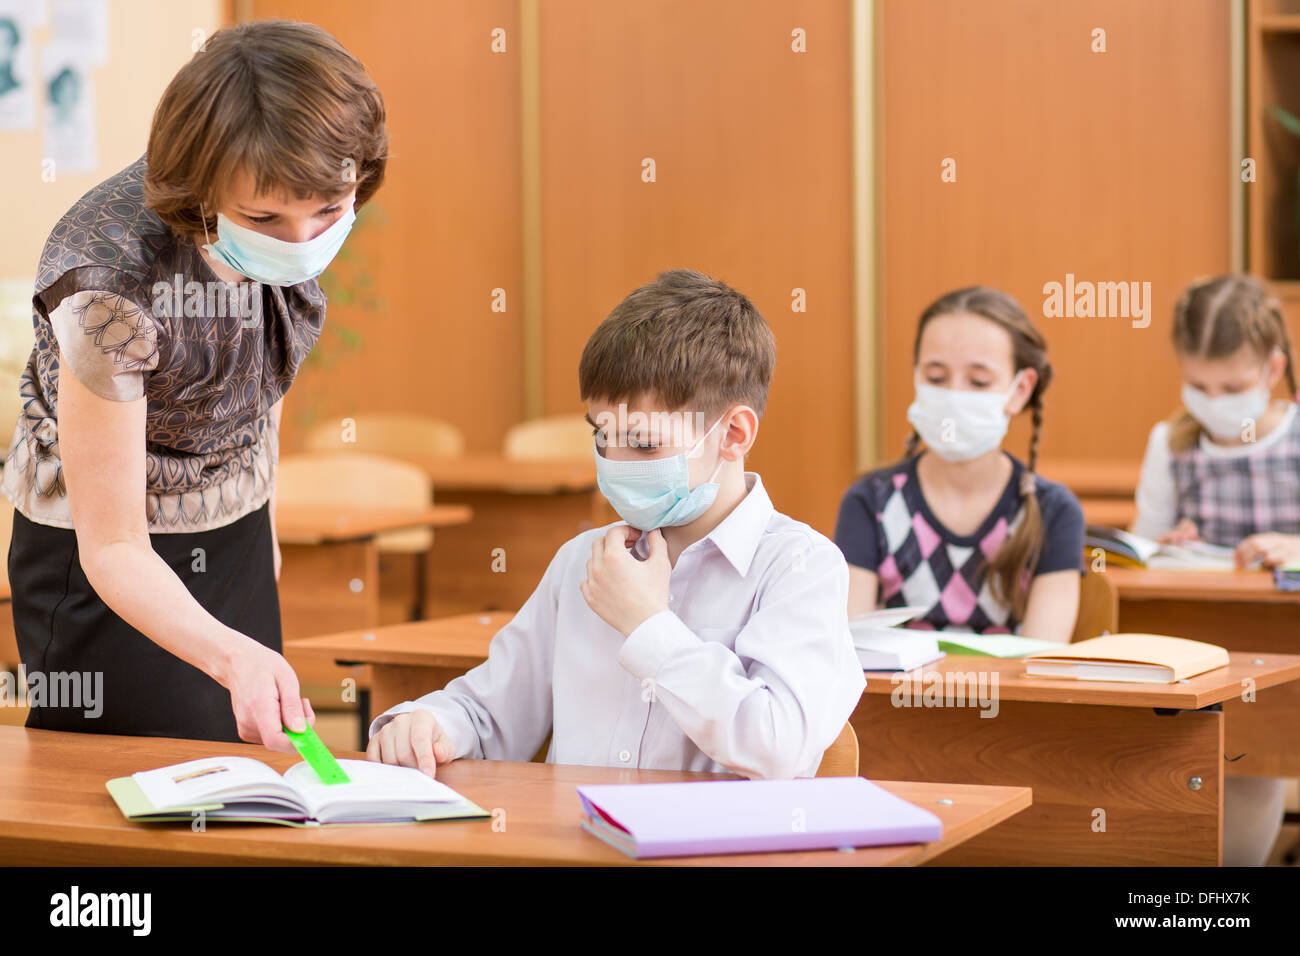 school kids and teacher with protection mask against flu virus at lesson - Stock Image